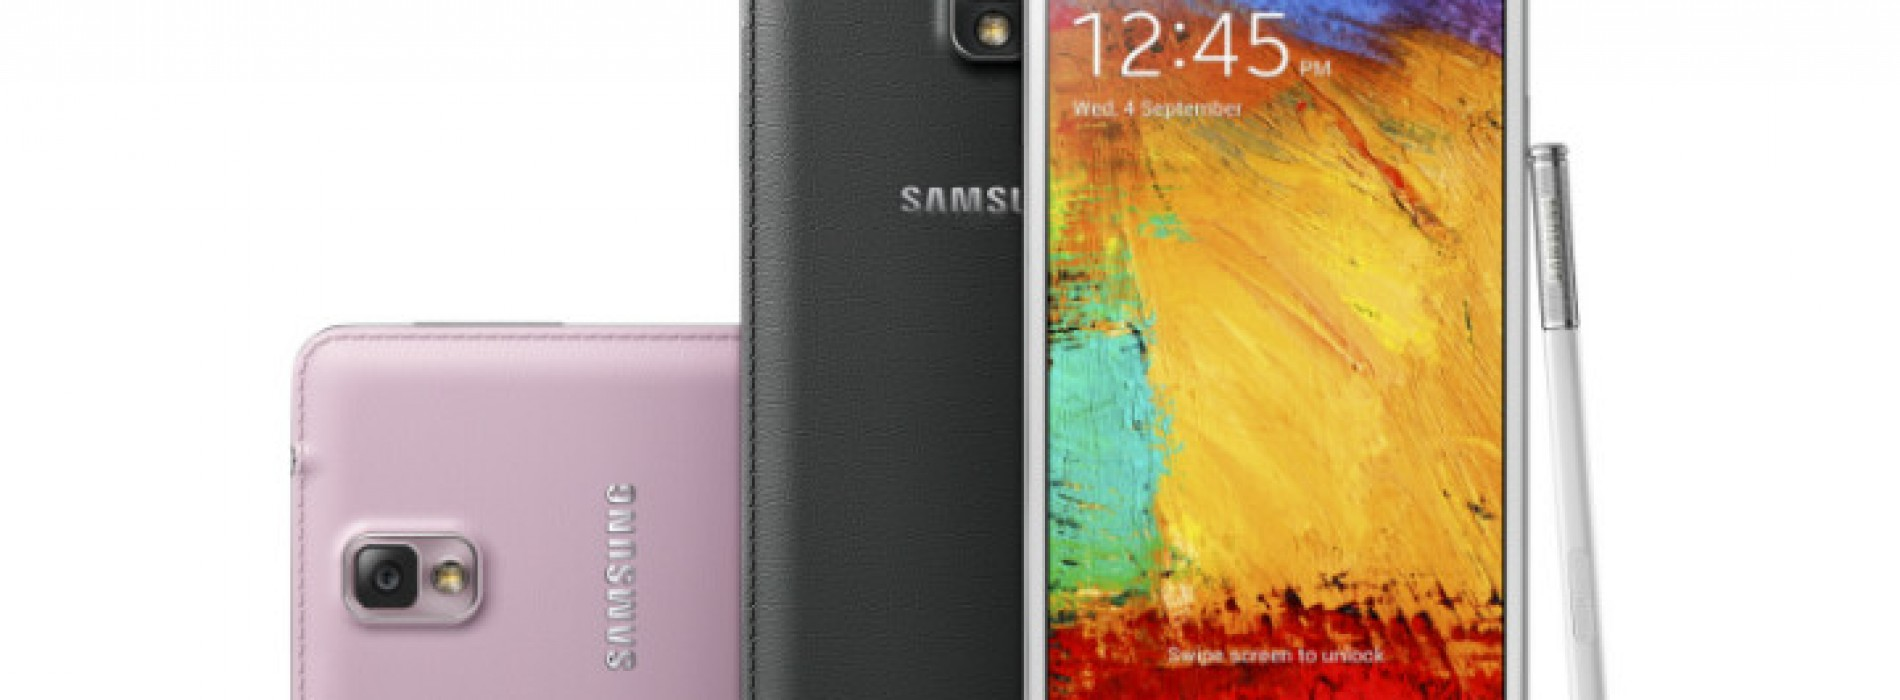 T-Mobile schedules Galaxy Note 3 and Galaxy Gear for October 2